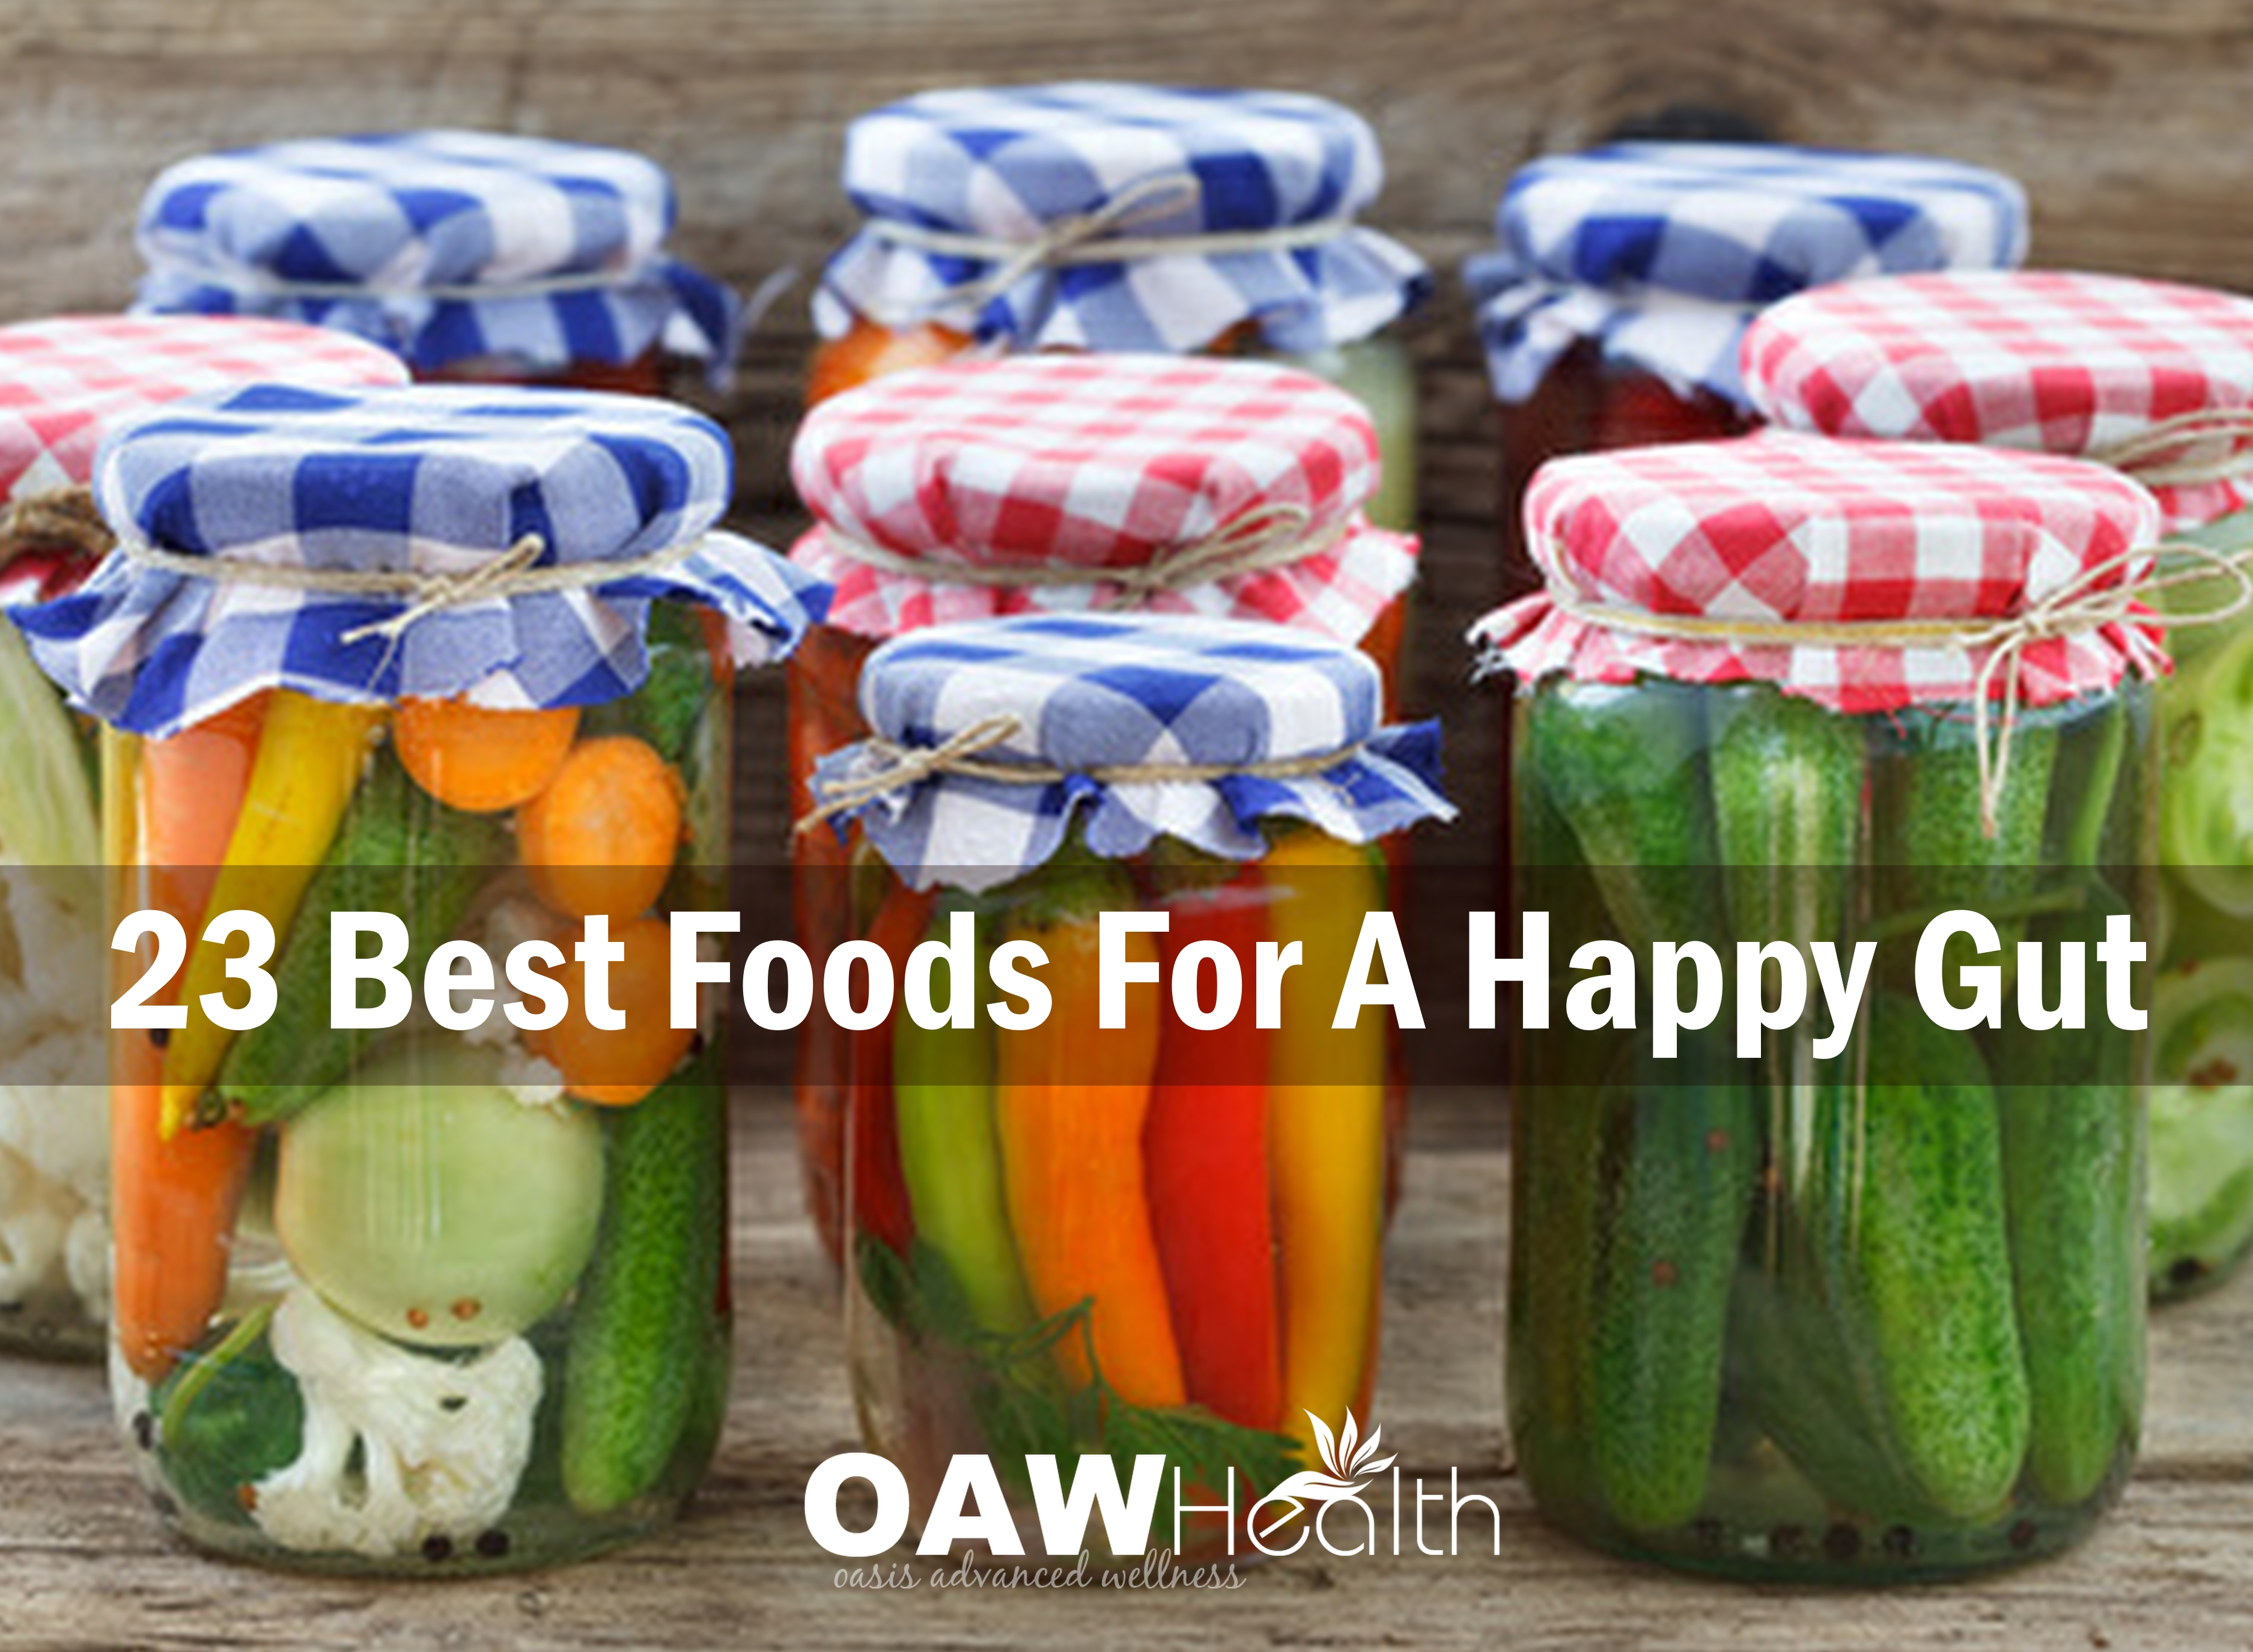 23 Best Foods For A Happy Gut